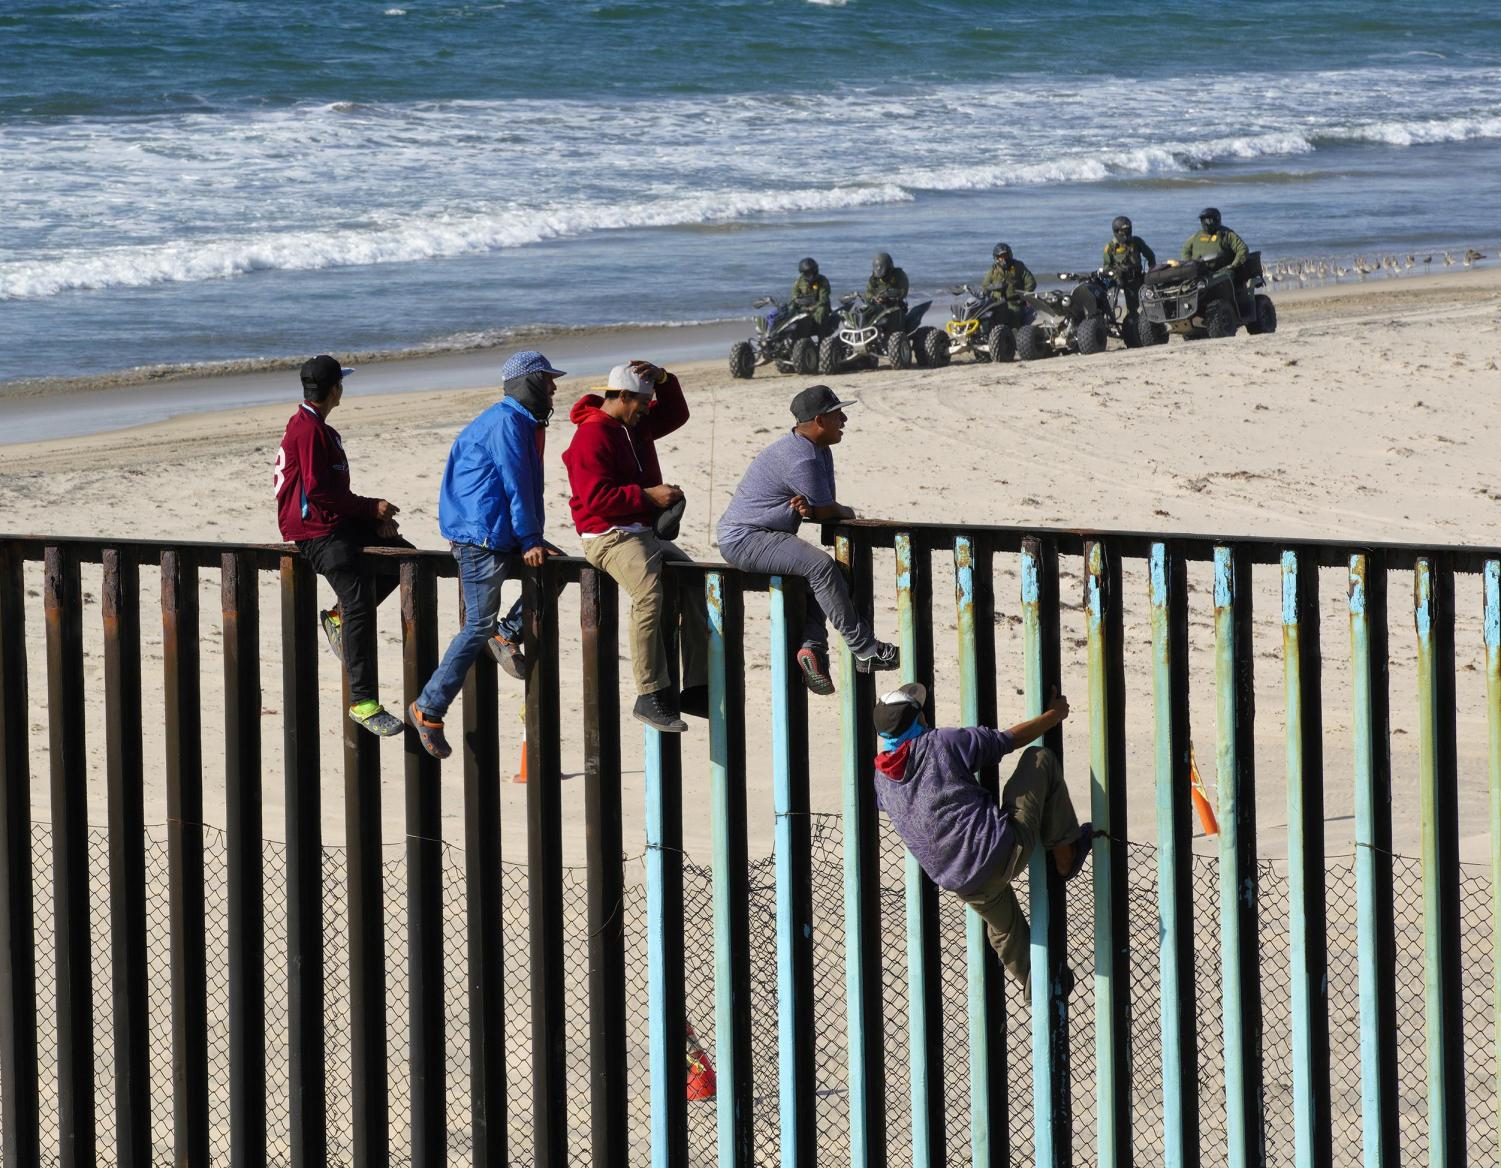 Opinion columnist Colin Horning discusses previous initiative by Democrats for border security, and the decline of that support during the Trump Administration.